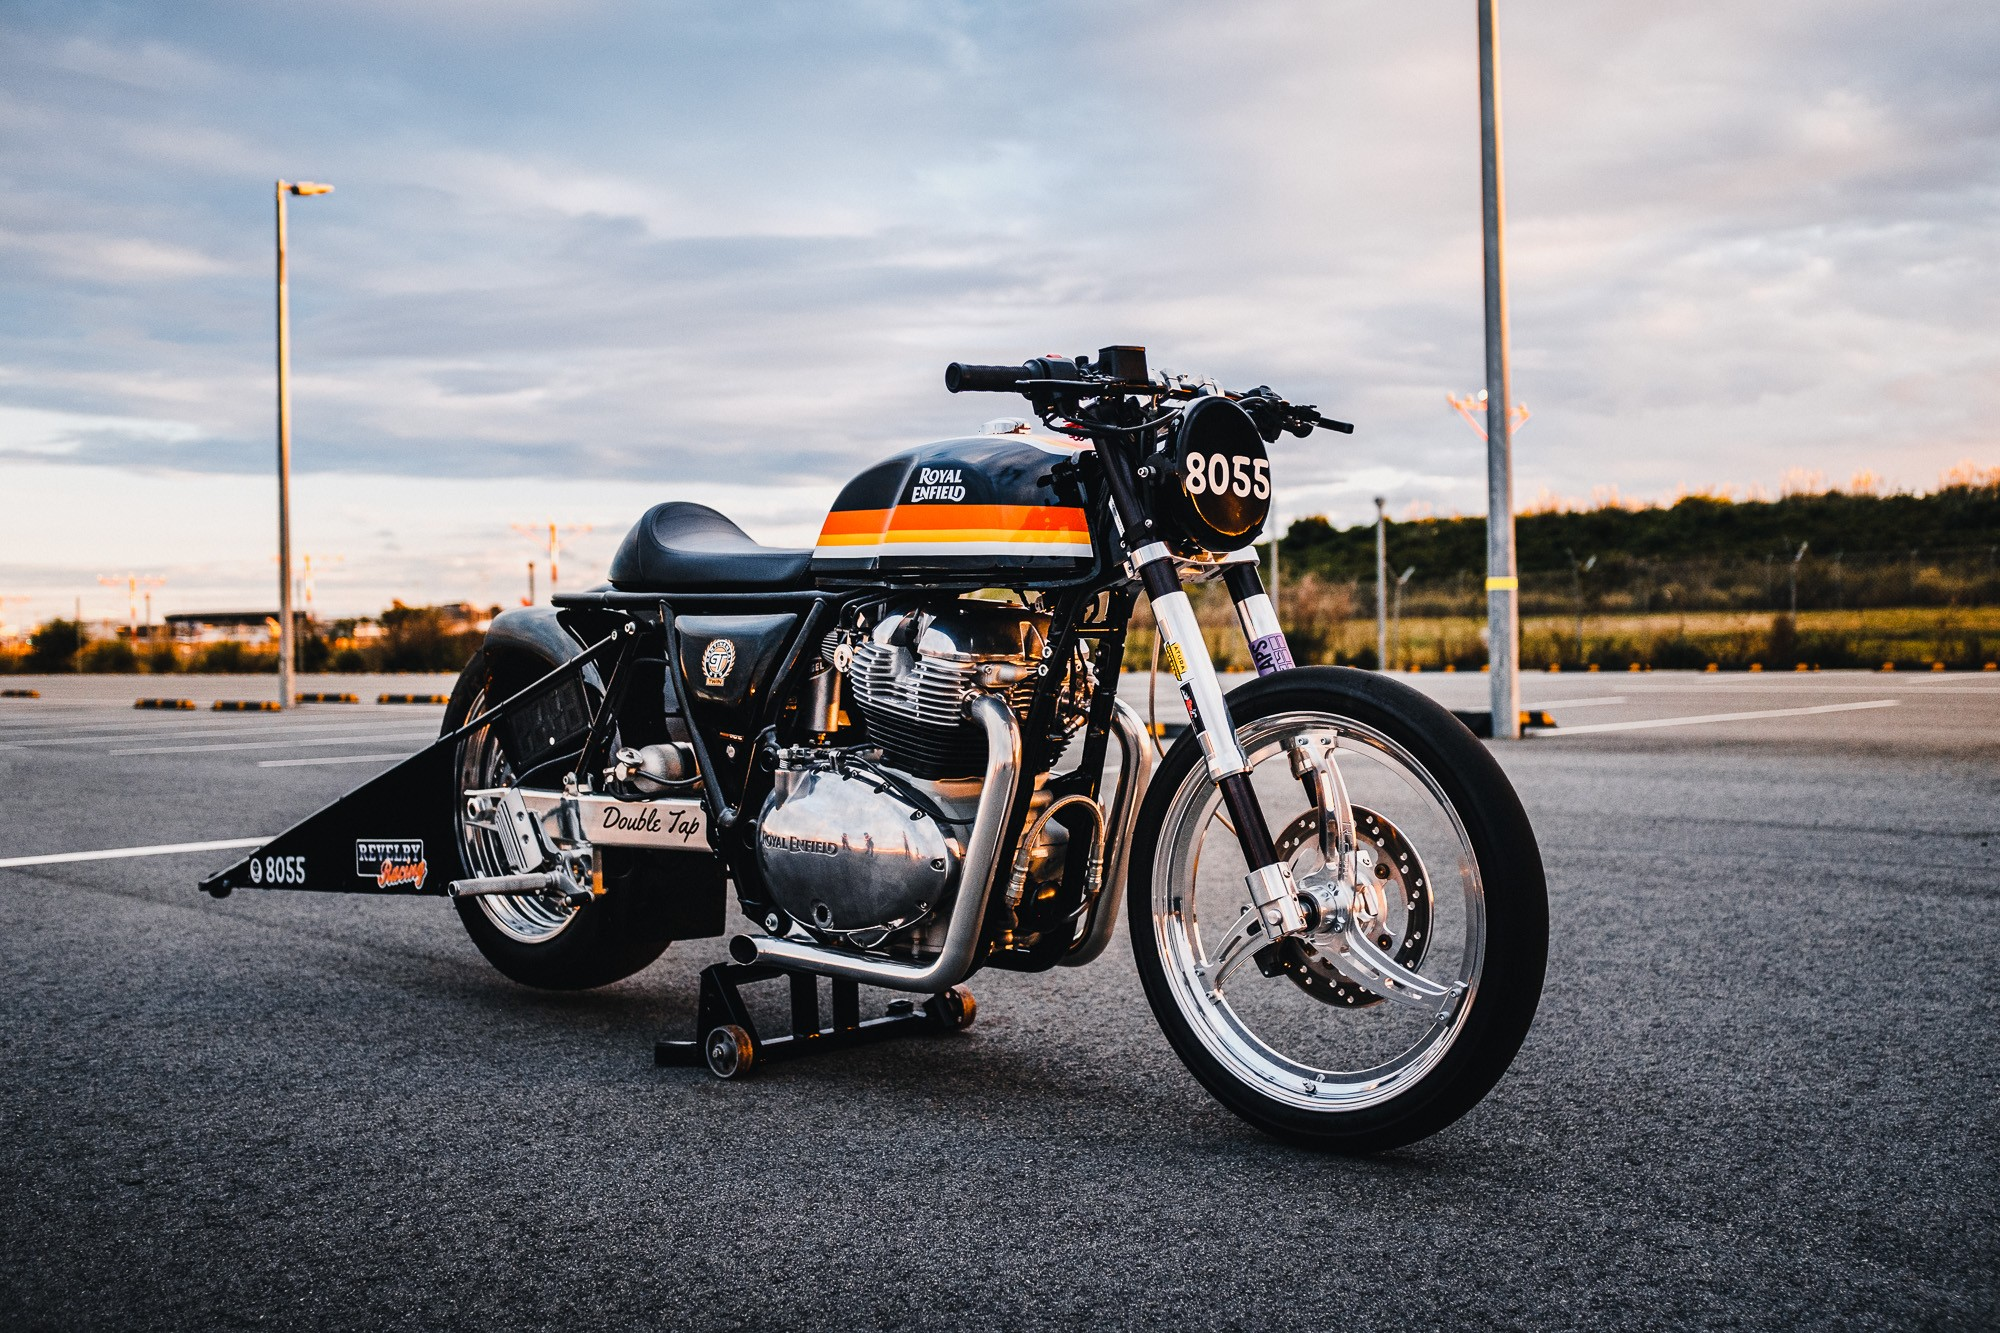 A Royal Enfield 650 Twin drag bike in a Sydney car park at sunset